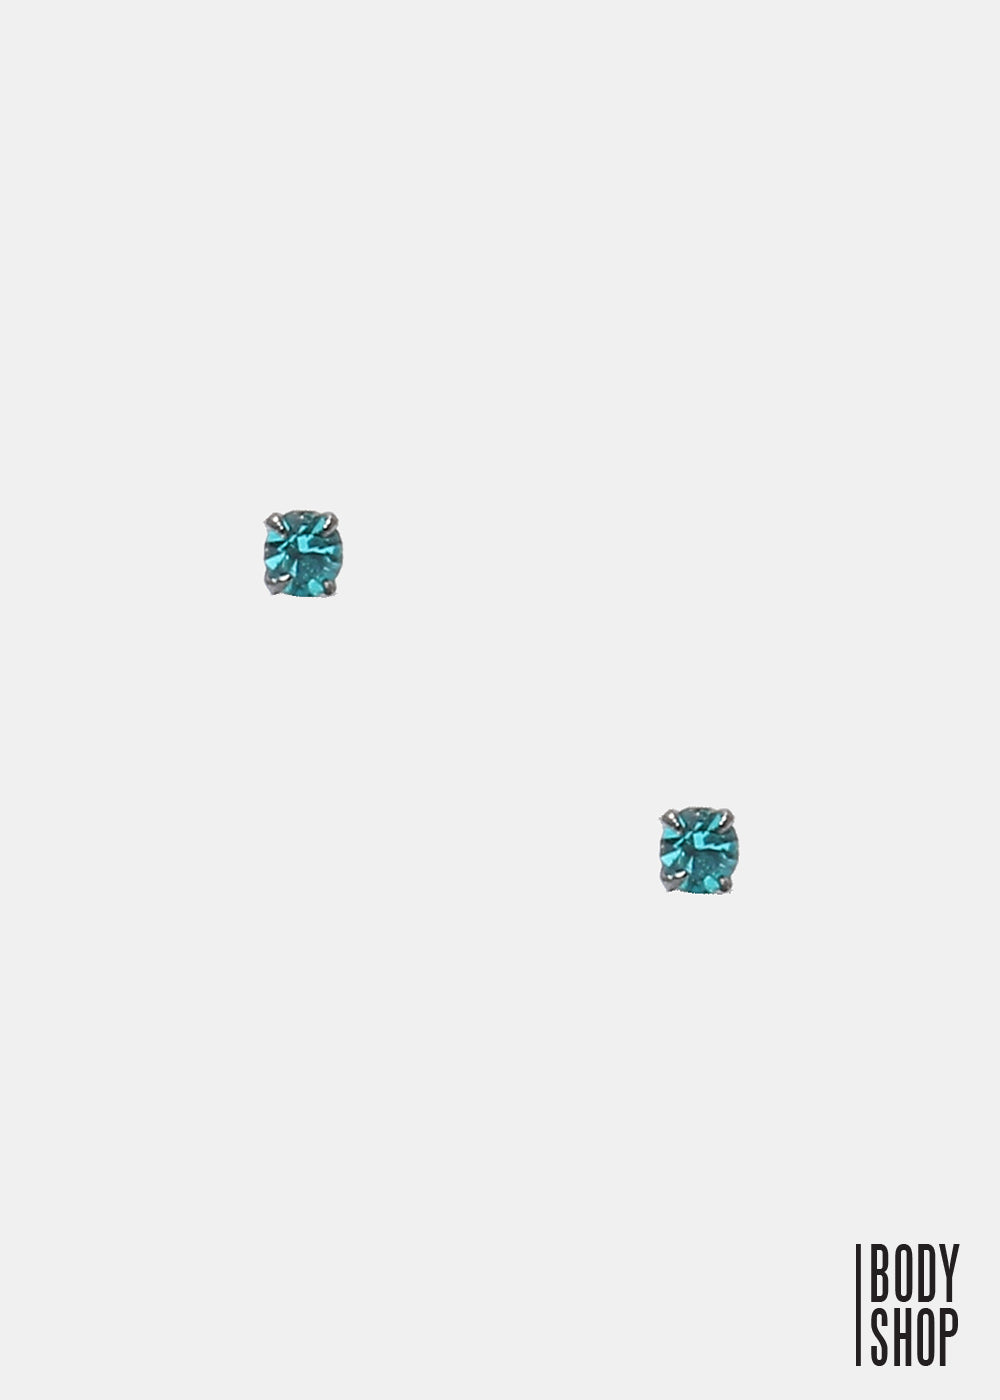 .925 Sterling Silver Nose Stud - Teal